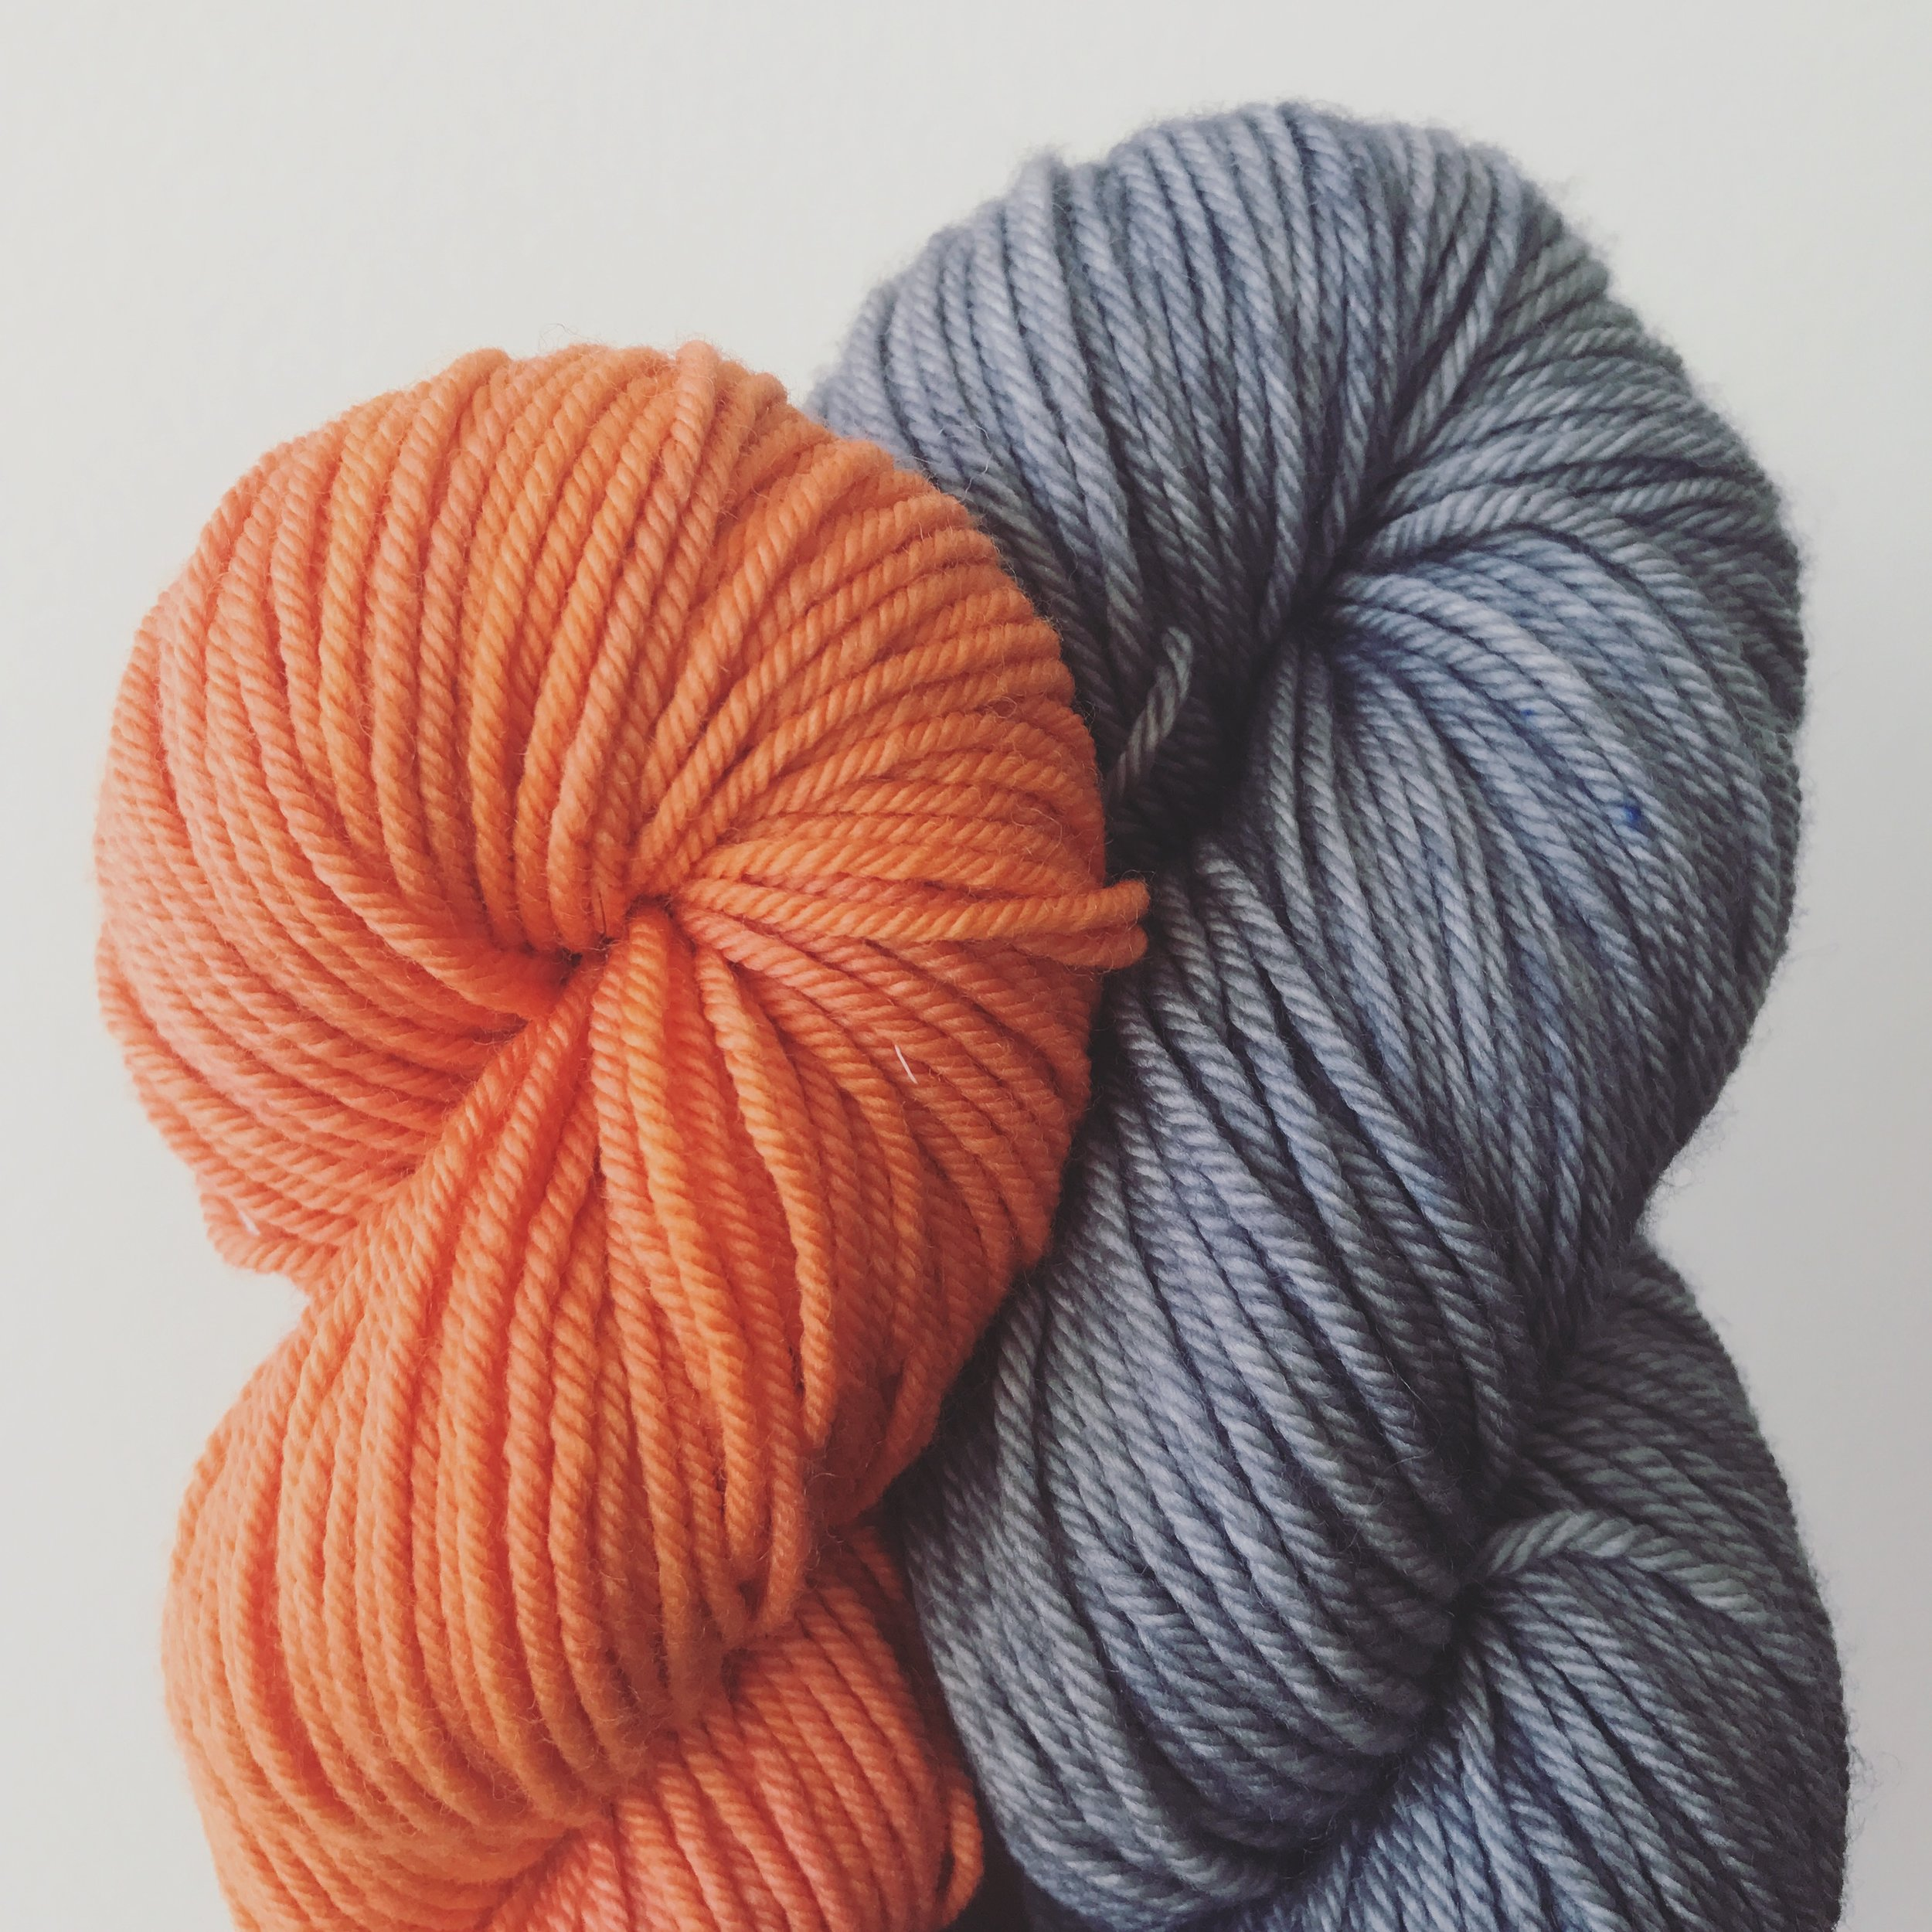 Mrs. Crosby, Steamer Trunk, Spicy Habanero & Why Knot Fibers, Steady, Pewter Image © Firefly Fiber Arts Studio